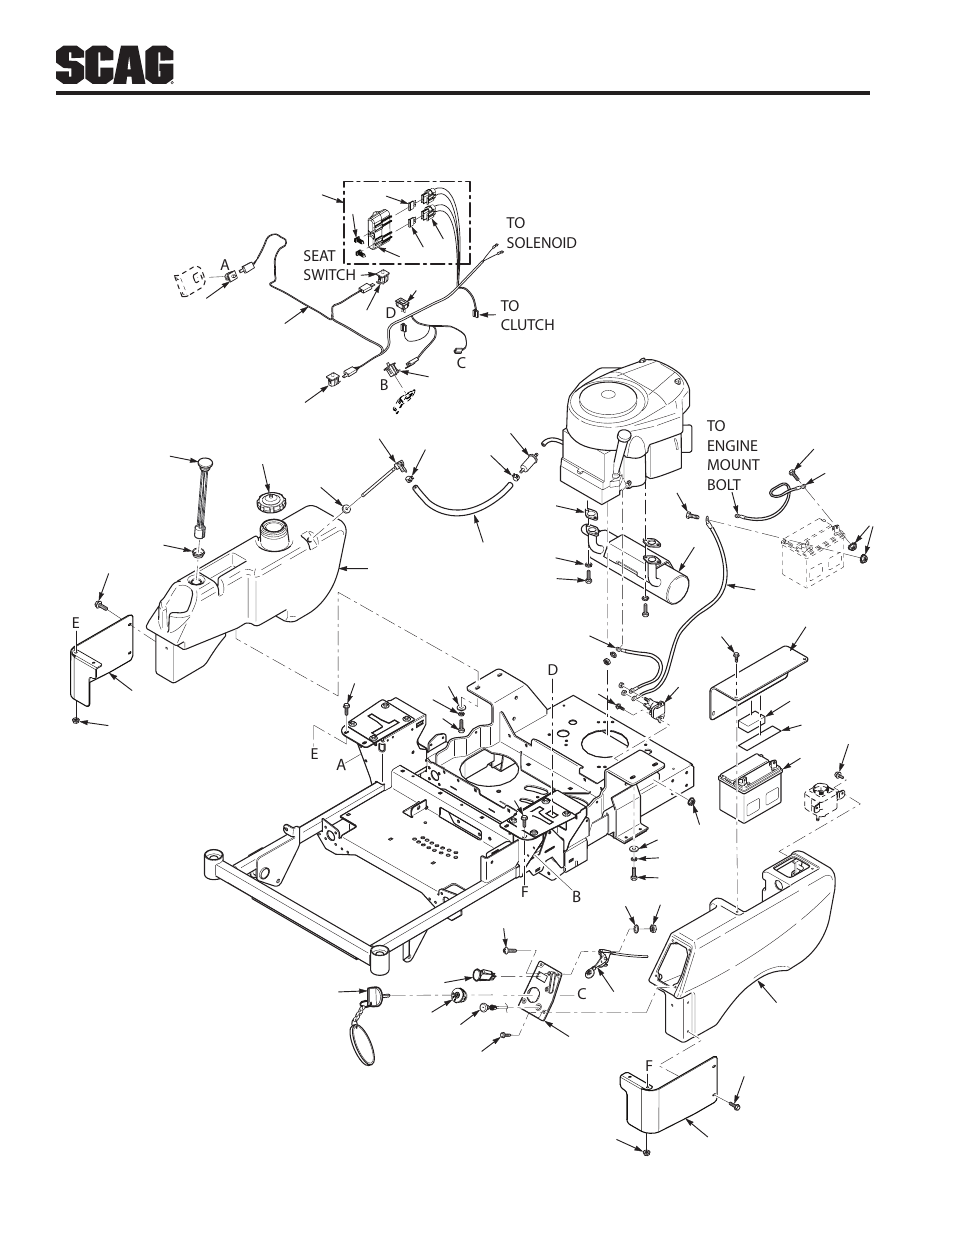 Fuel And Electrical System